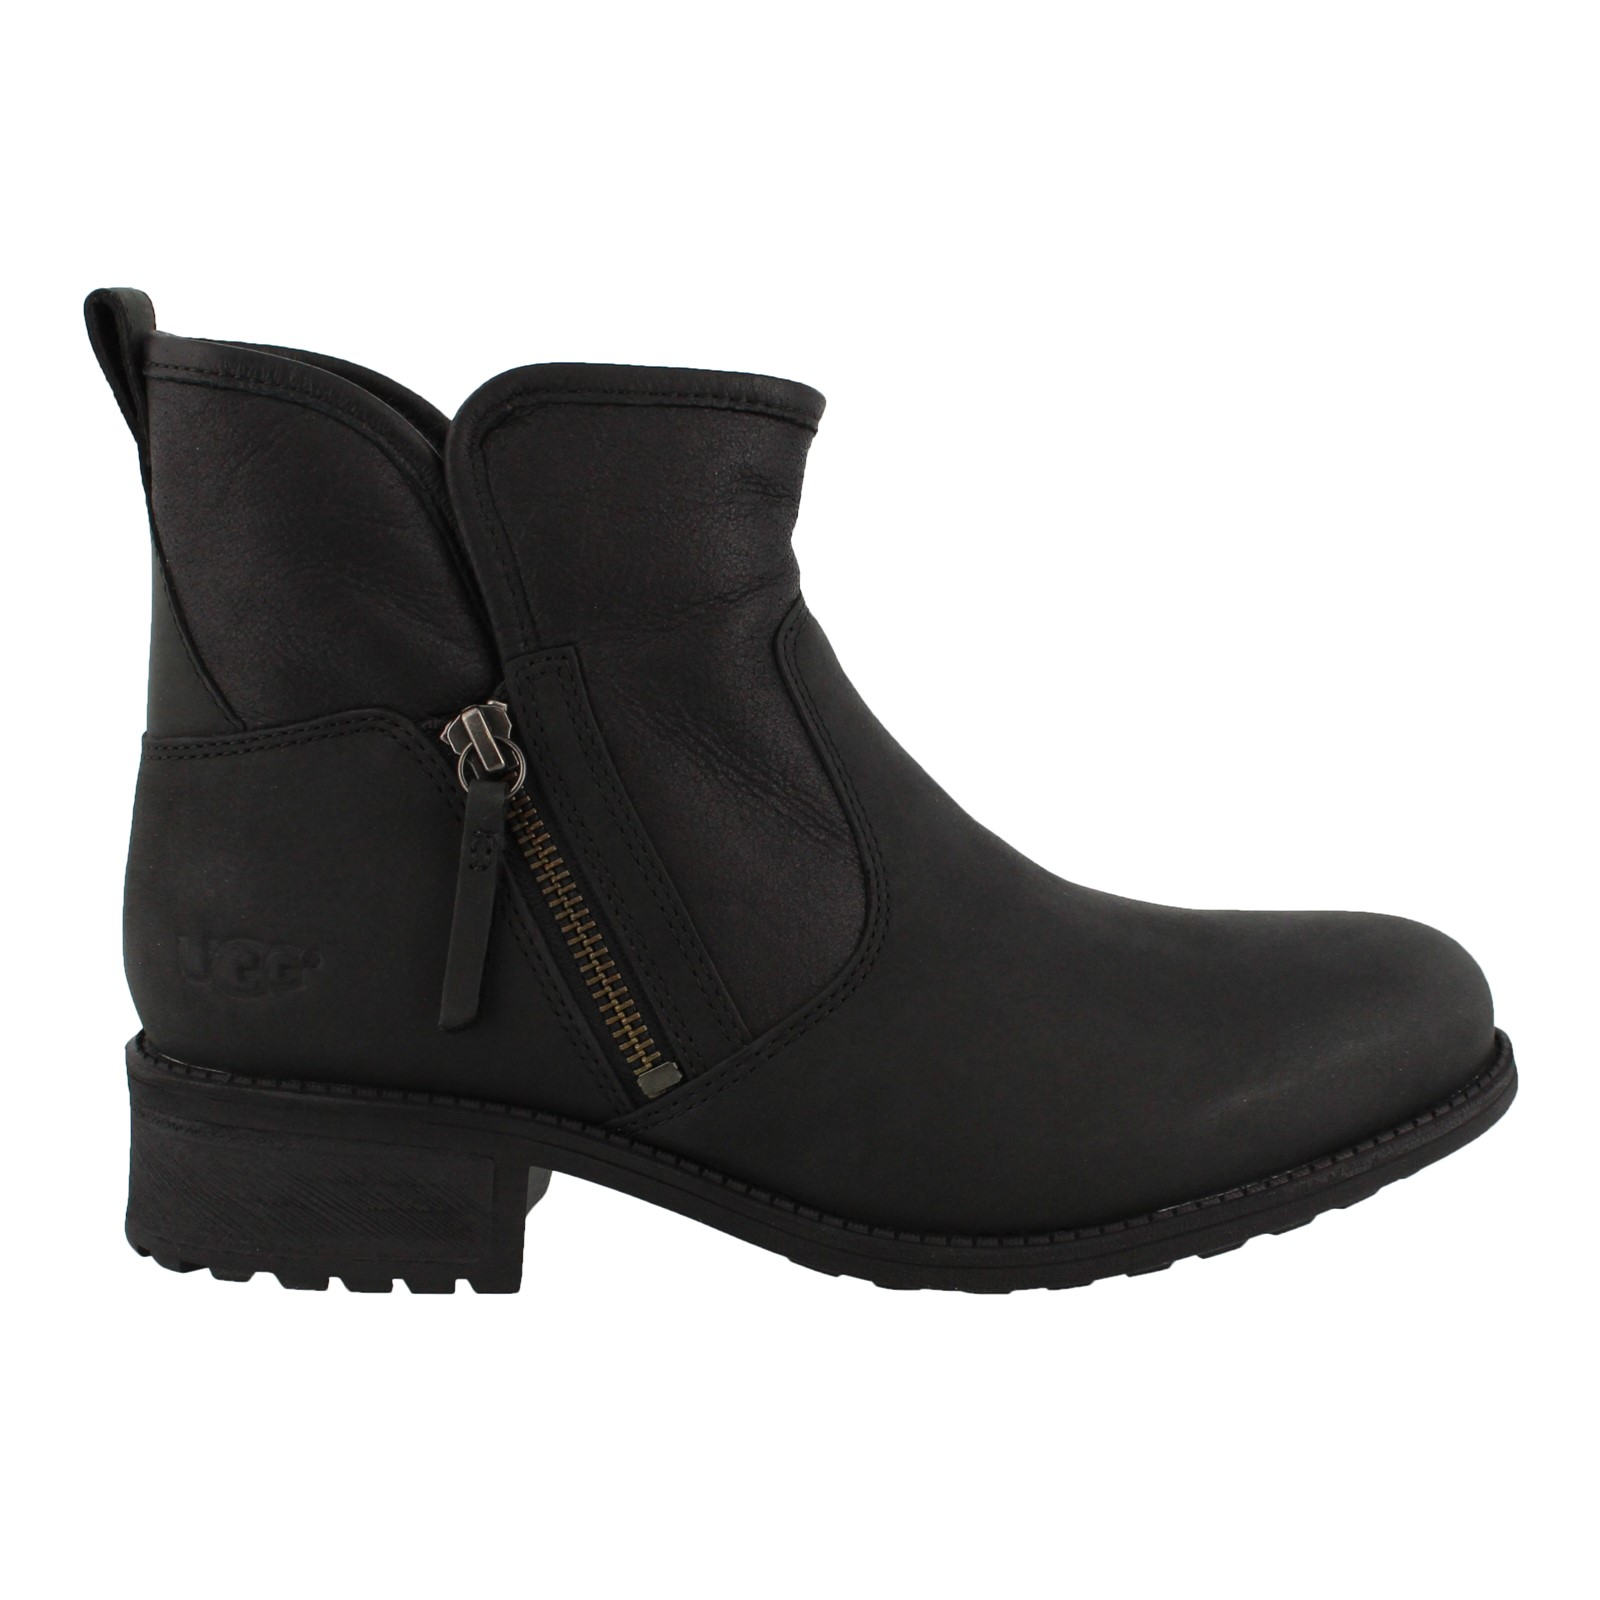 Women's Ugg, LaVelle Ankle Boots